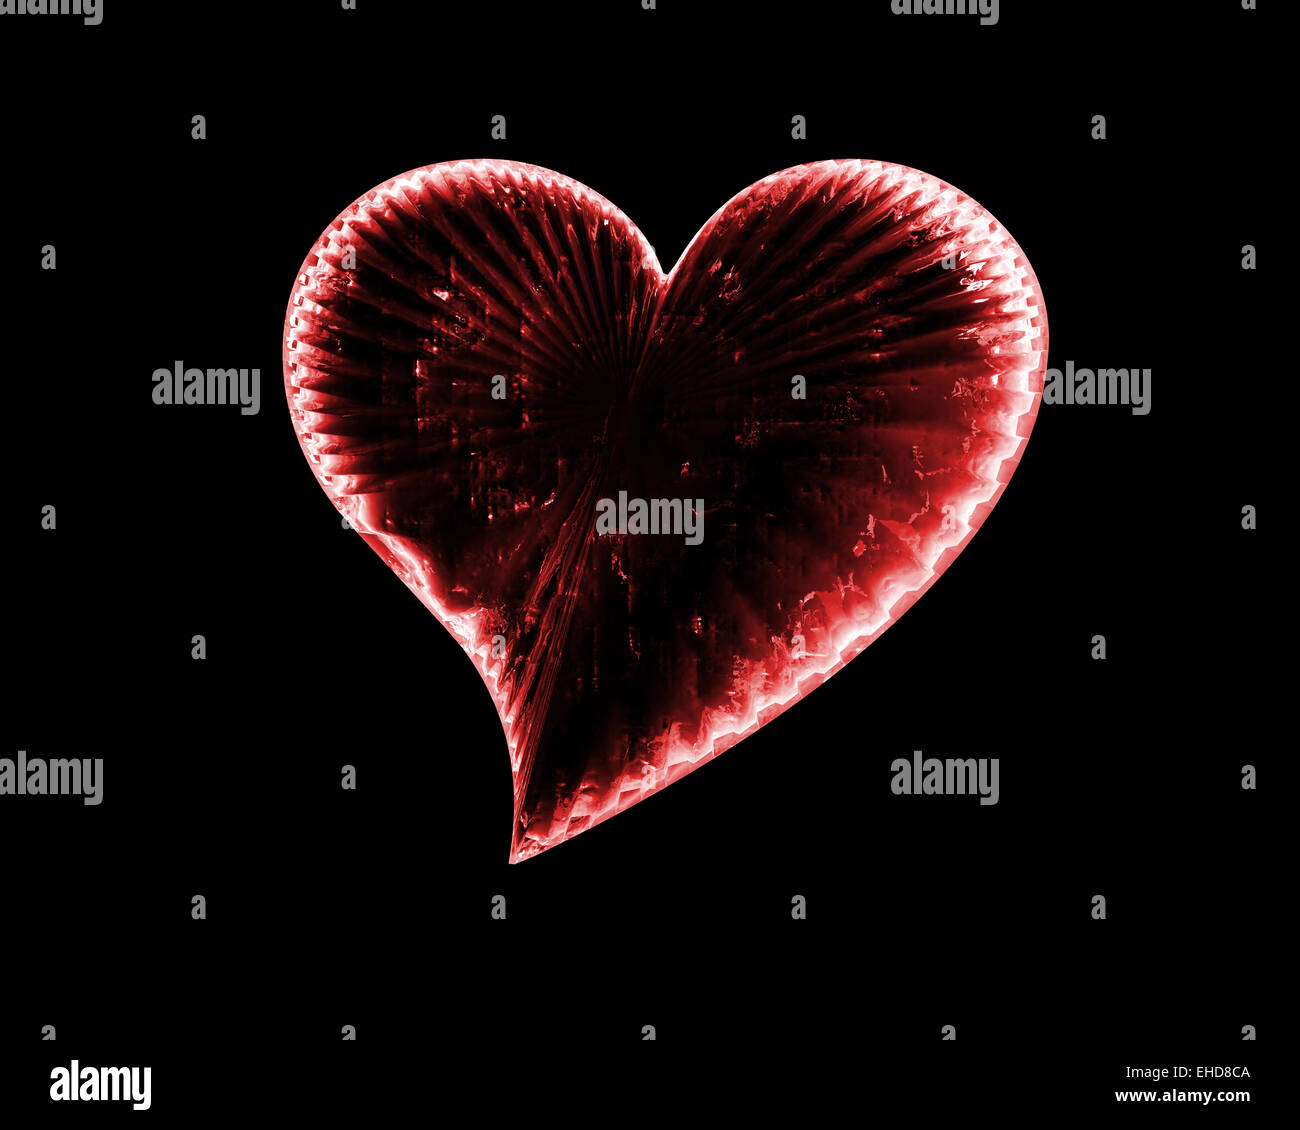 red icy heart in the dark - Stock Image